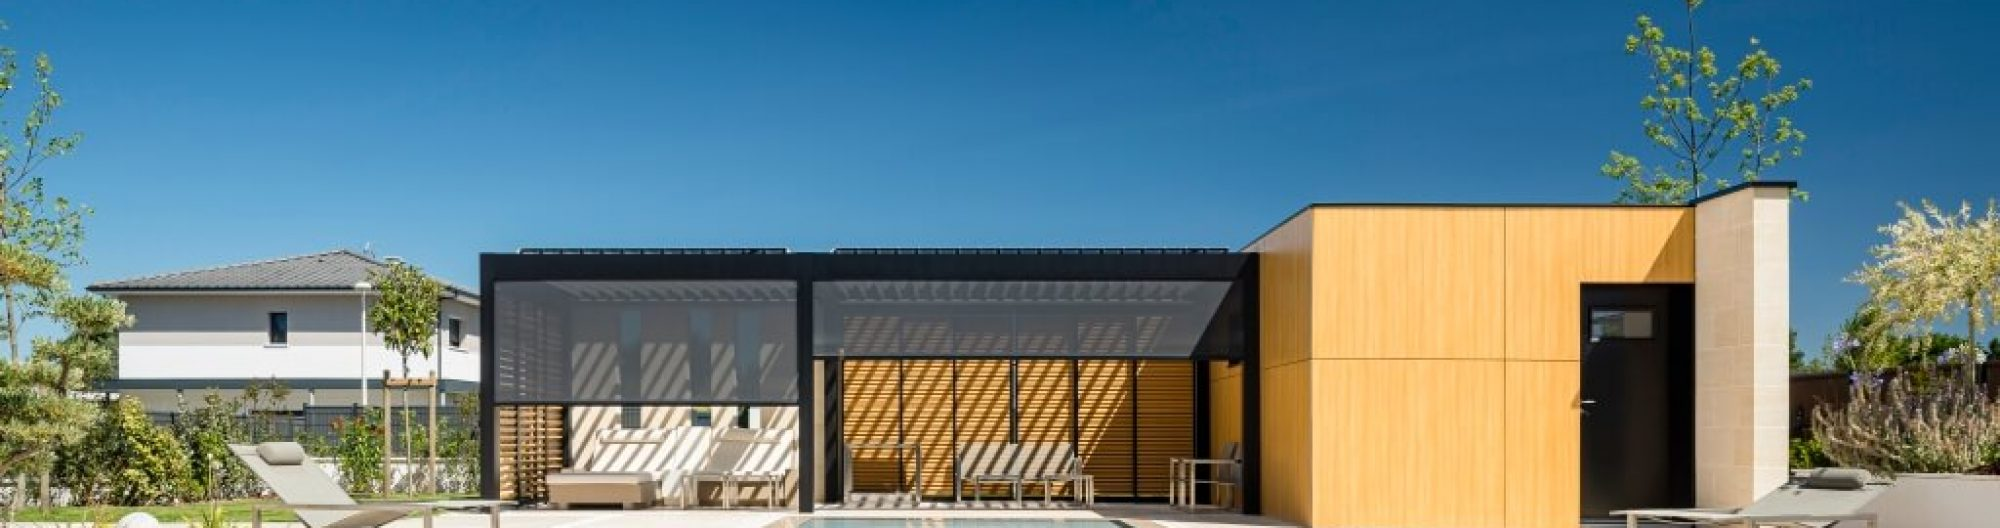 01-private_residence_bordeaux_23